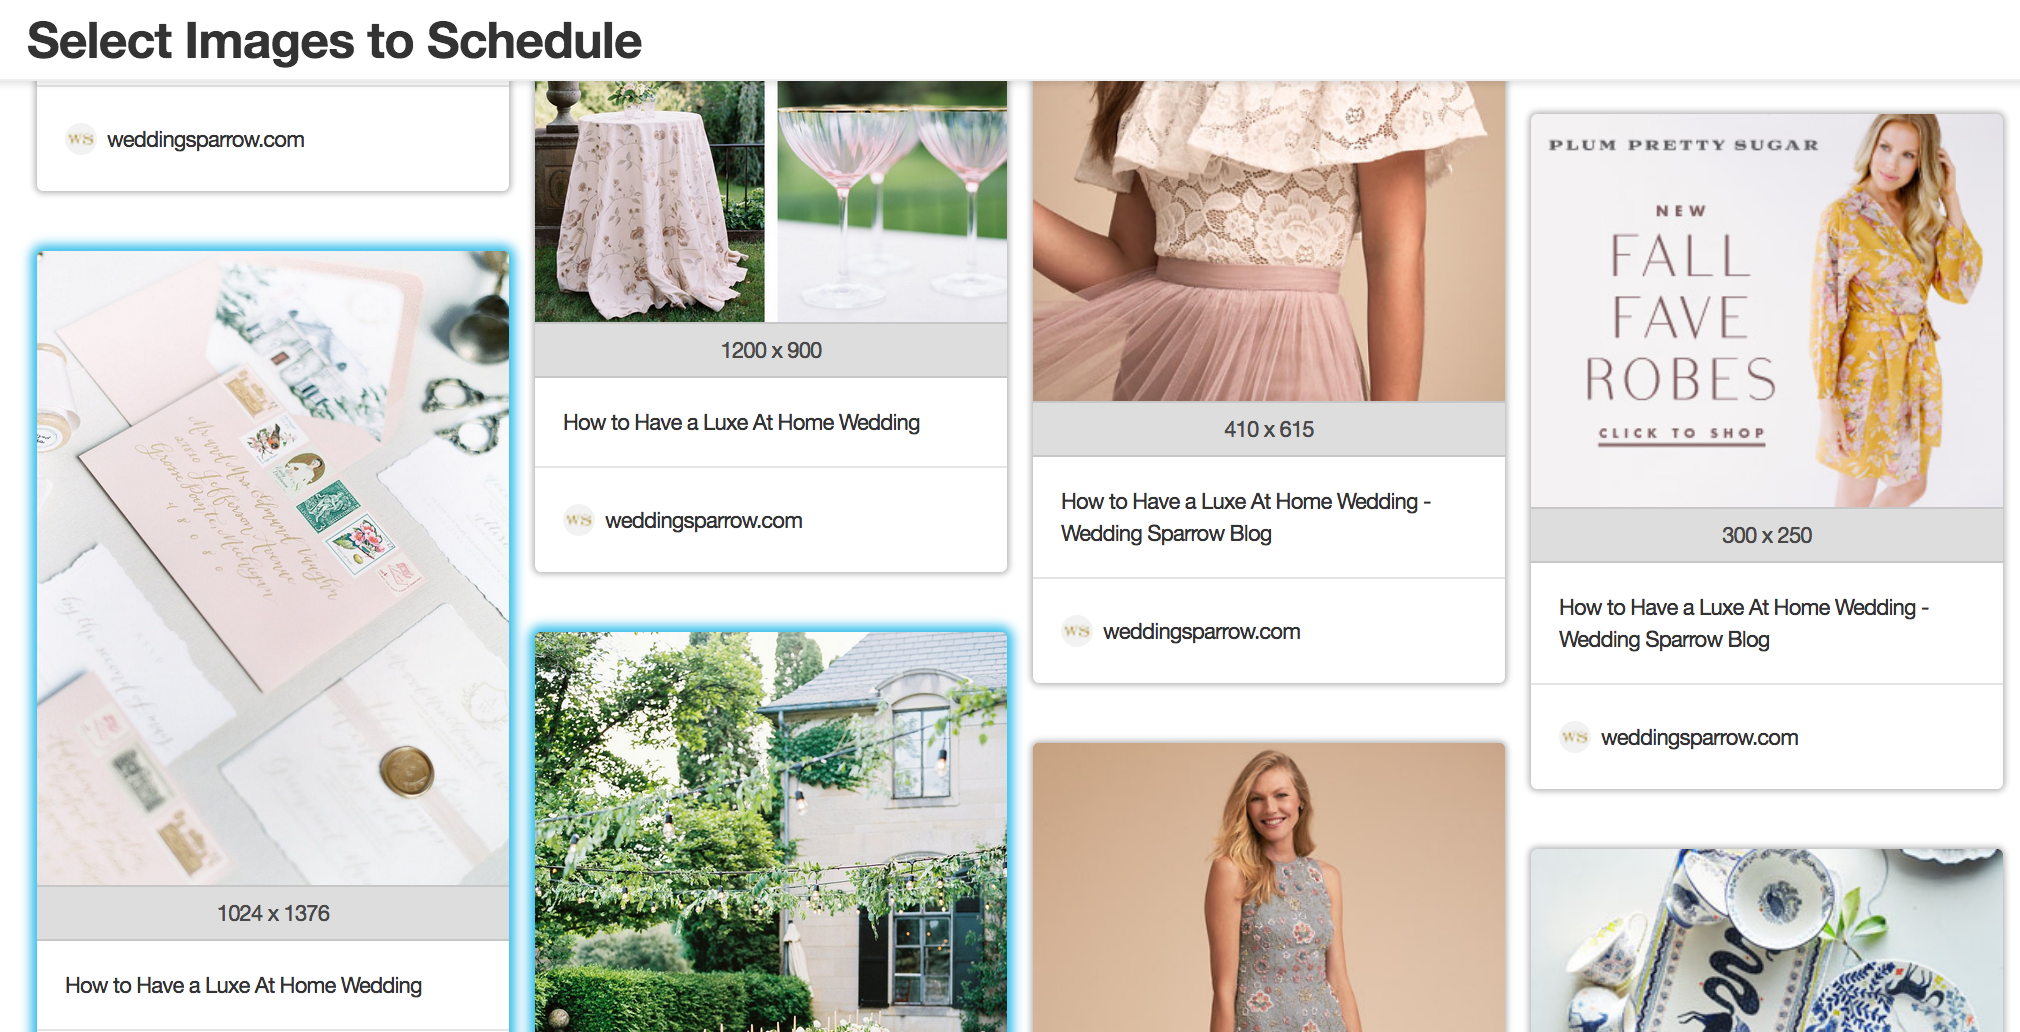 Schedule your pins with tailwind! Use the tried and true strategies that I have used for my business #pinterestforbusiness